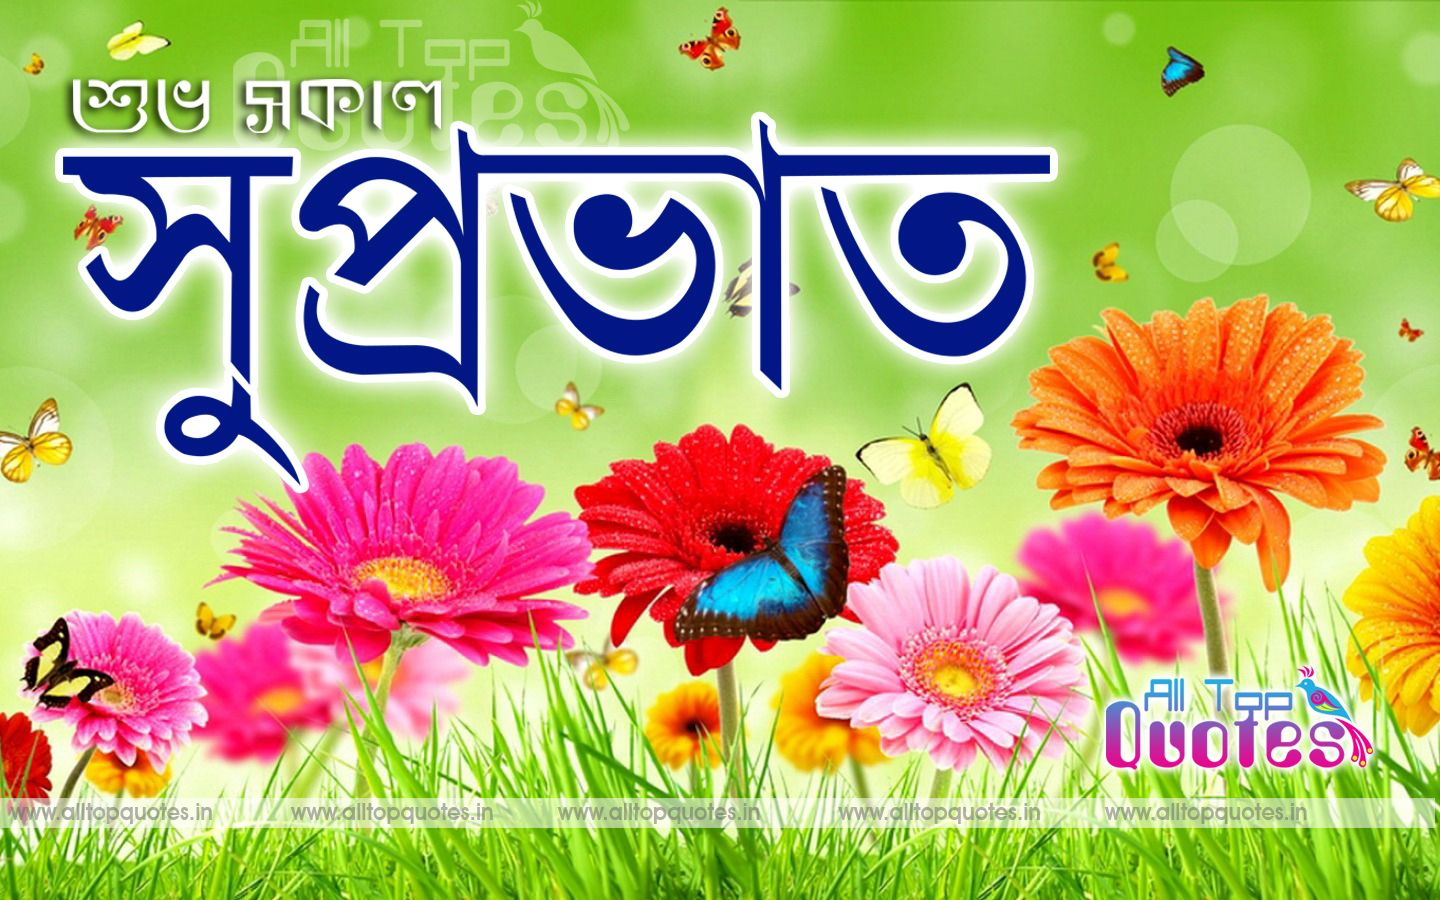 Good Morning Bengali Bangla Quotes All Top Quotes Telugu Quotes